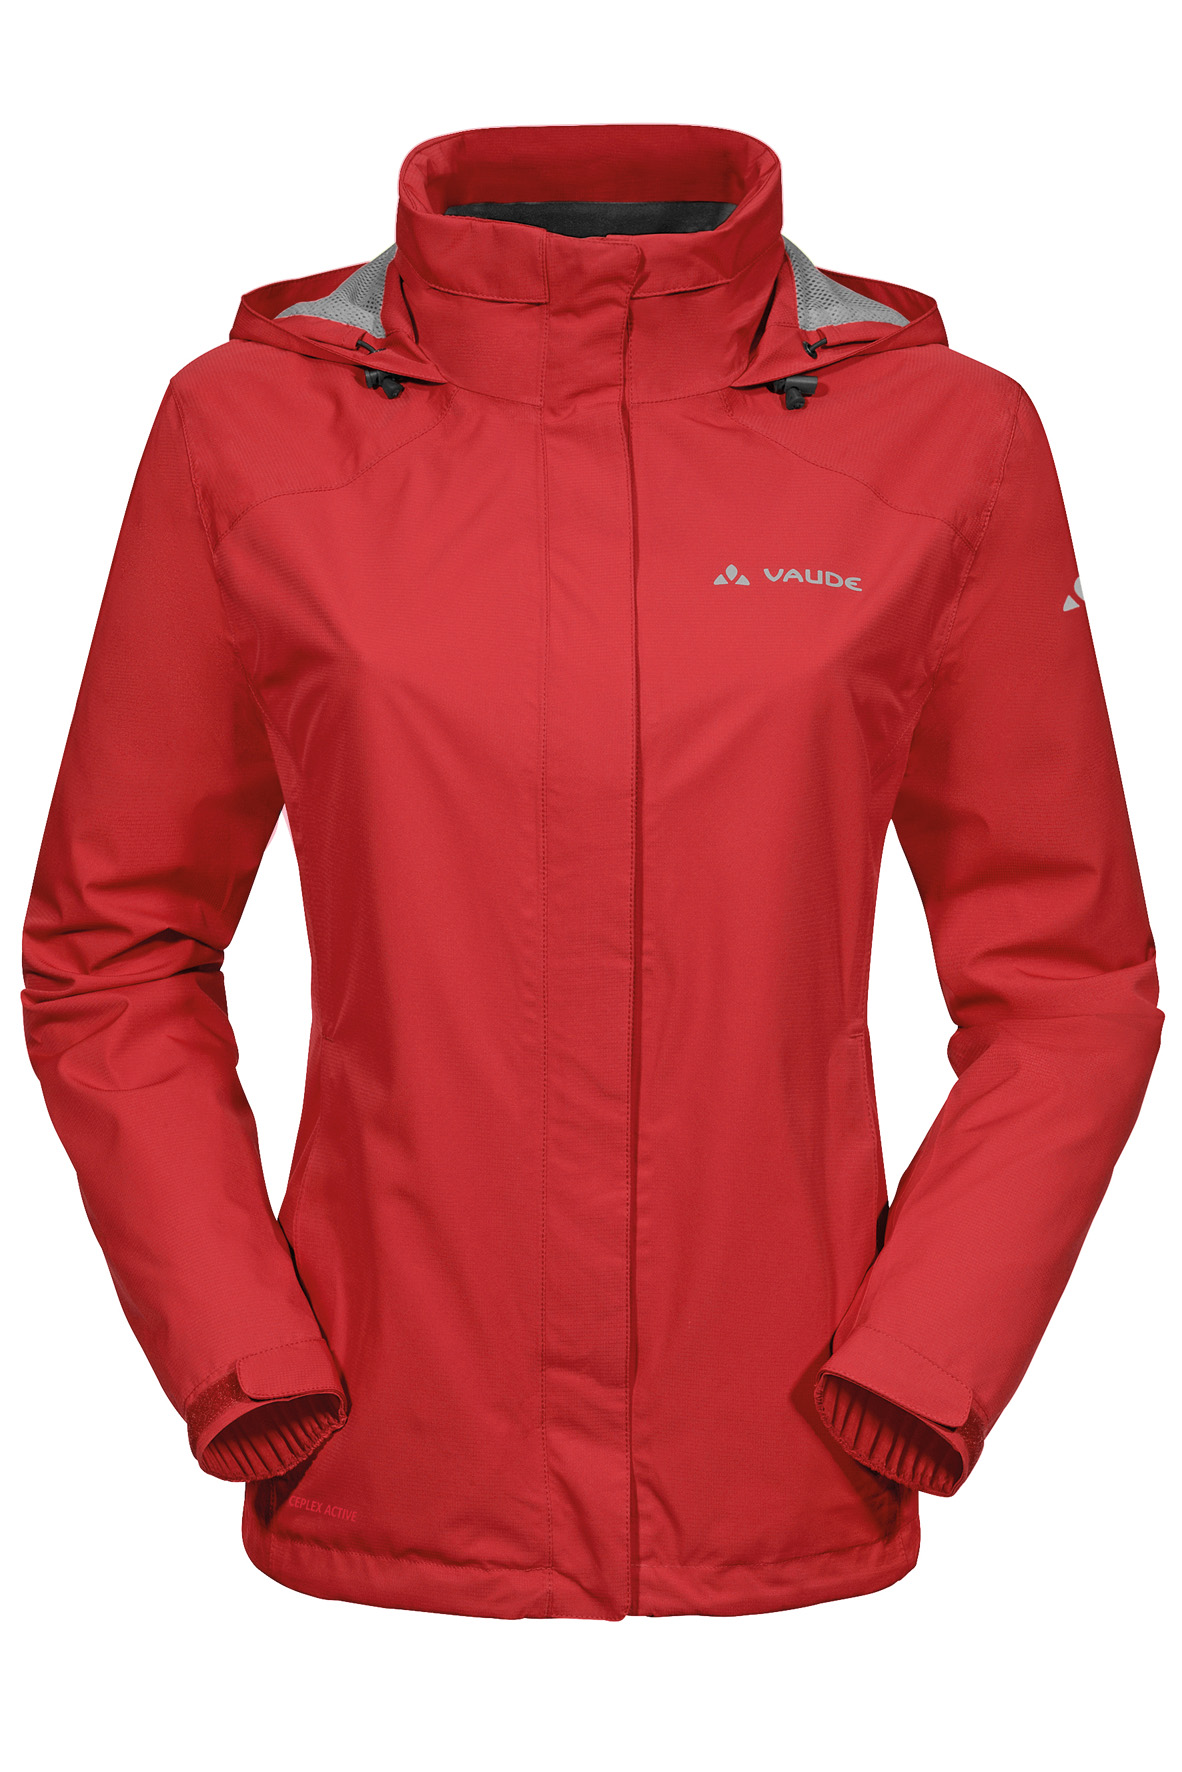 VAUDE Women´s Escape Bike Light Jacket red Größe 36 - schneider-sports